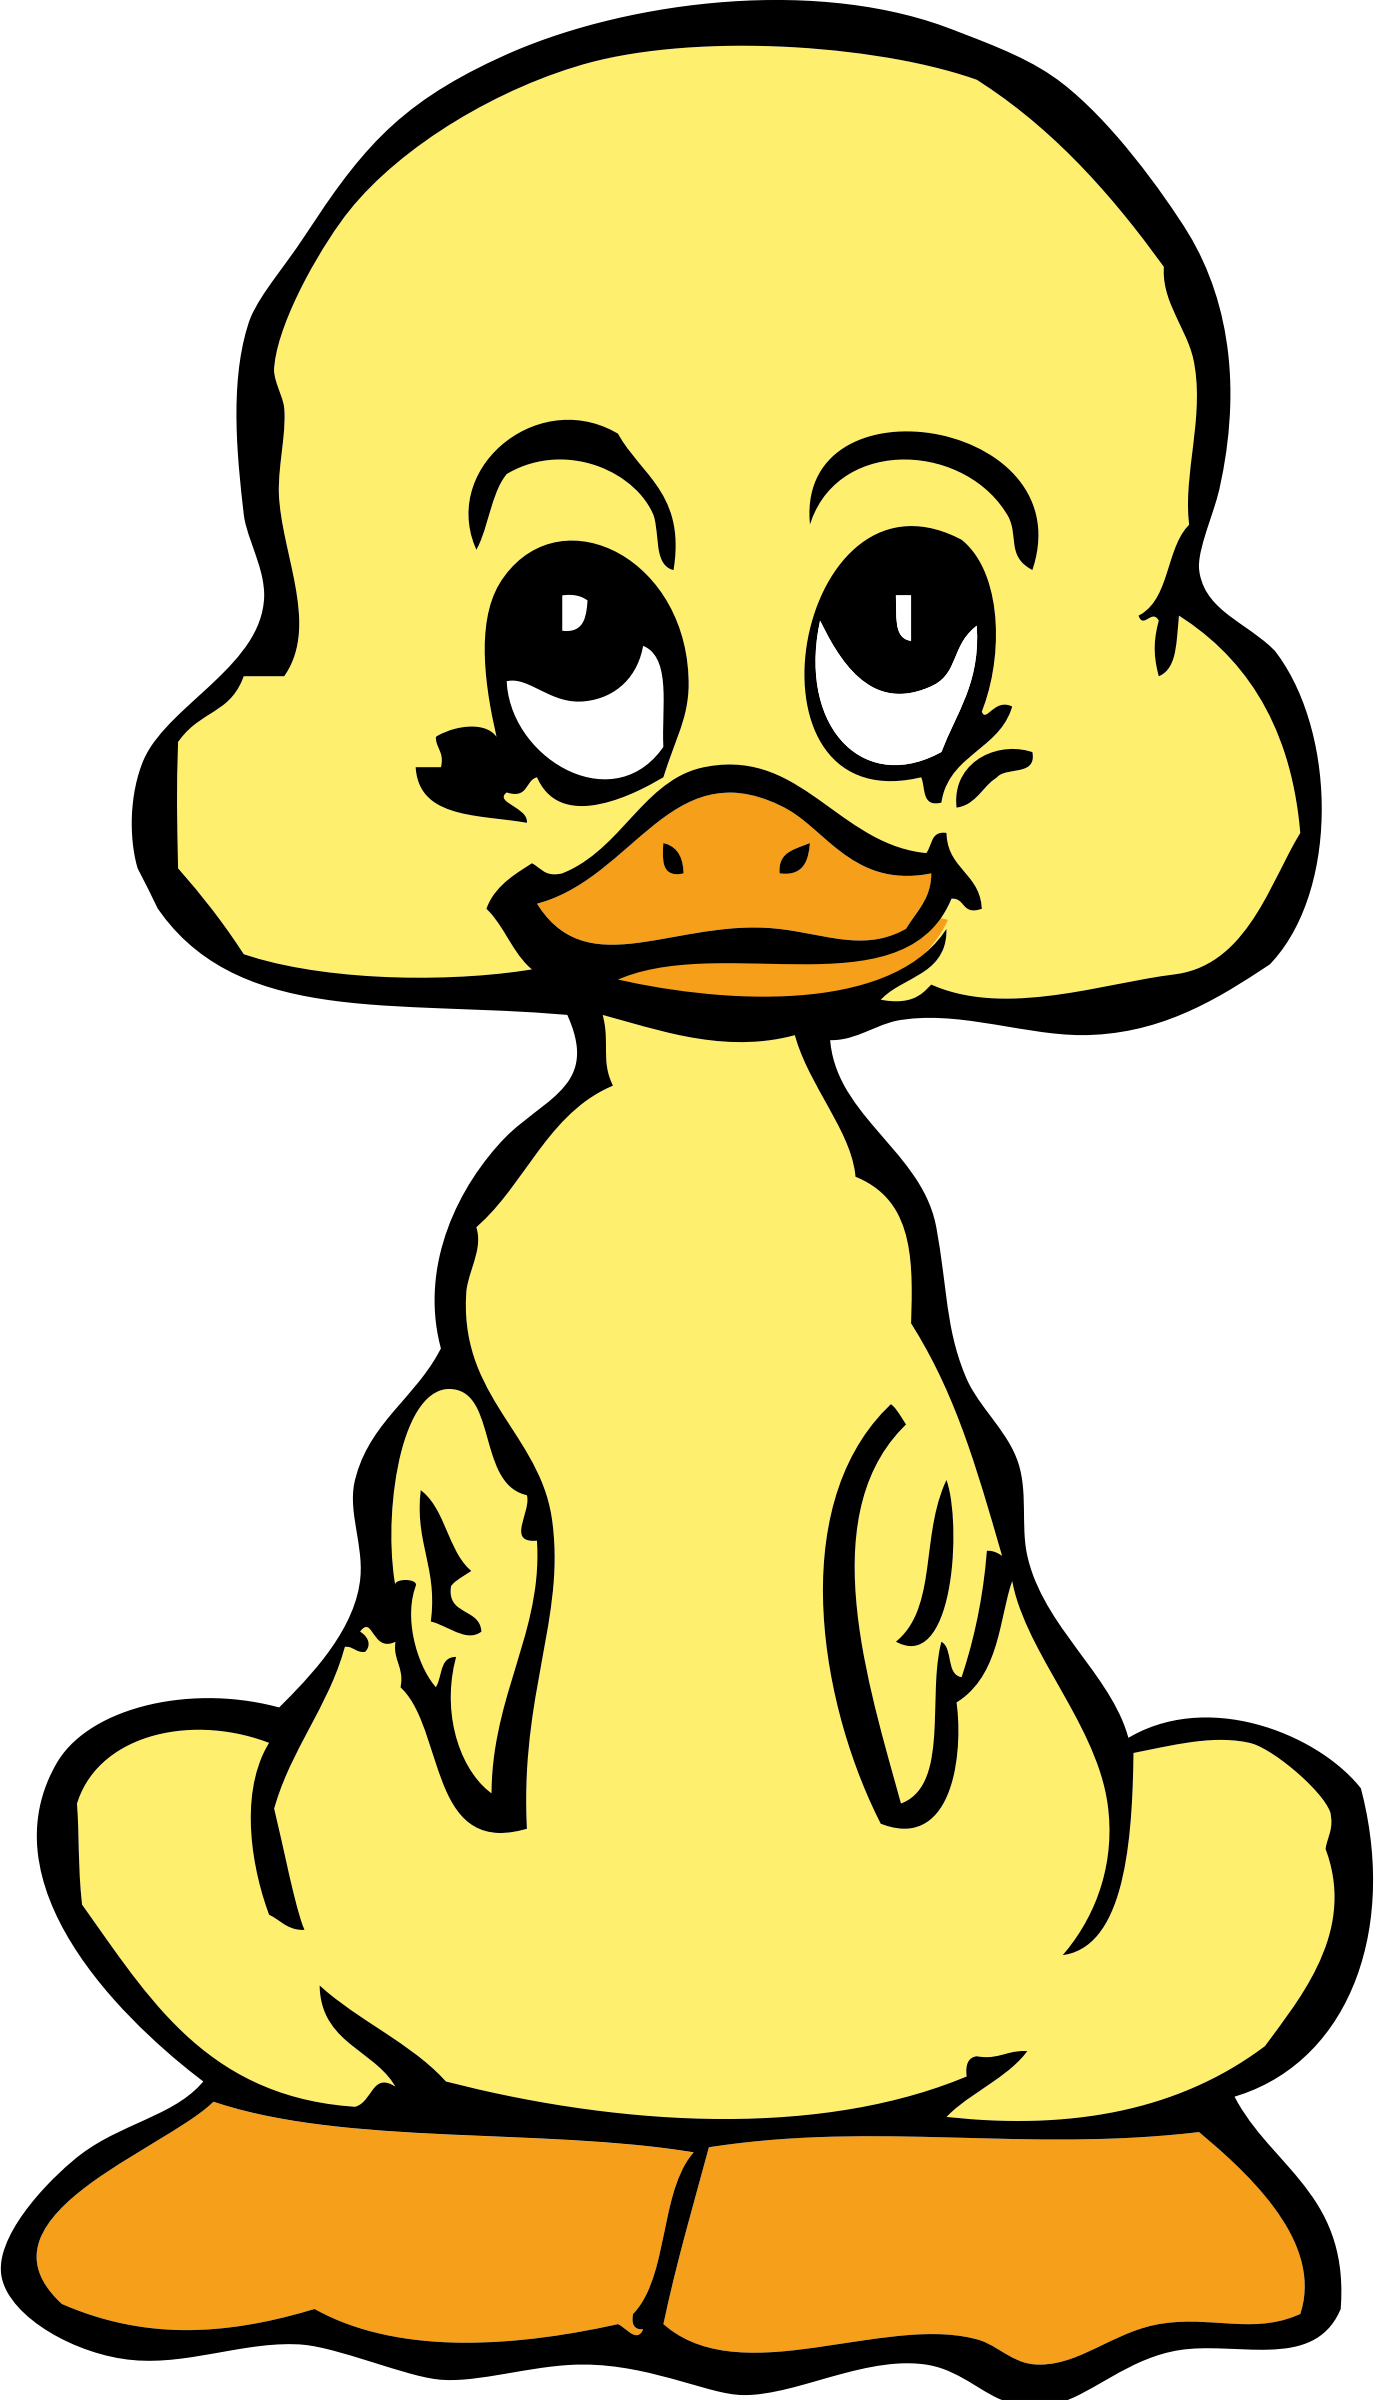 Duck clipart baby duck. Big image png